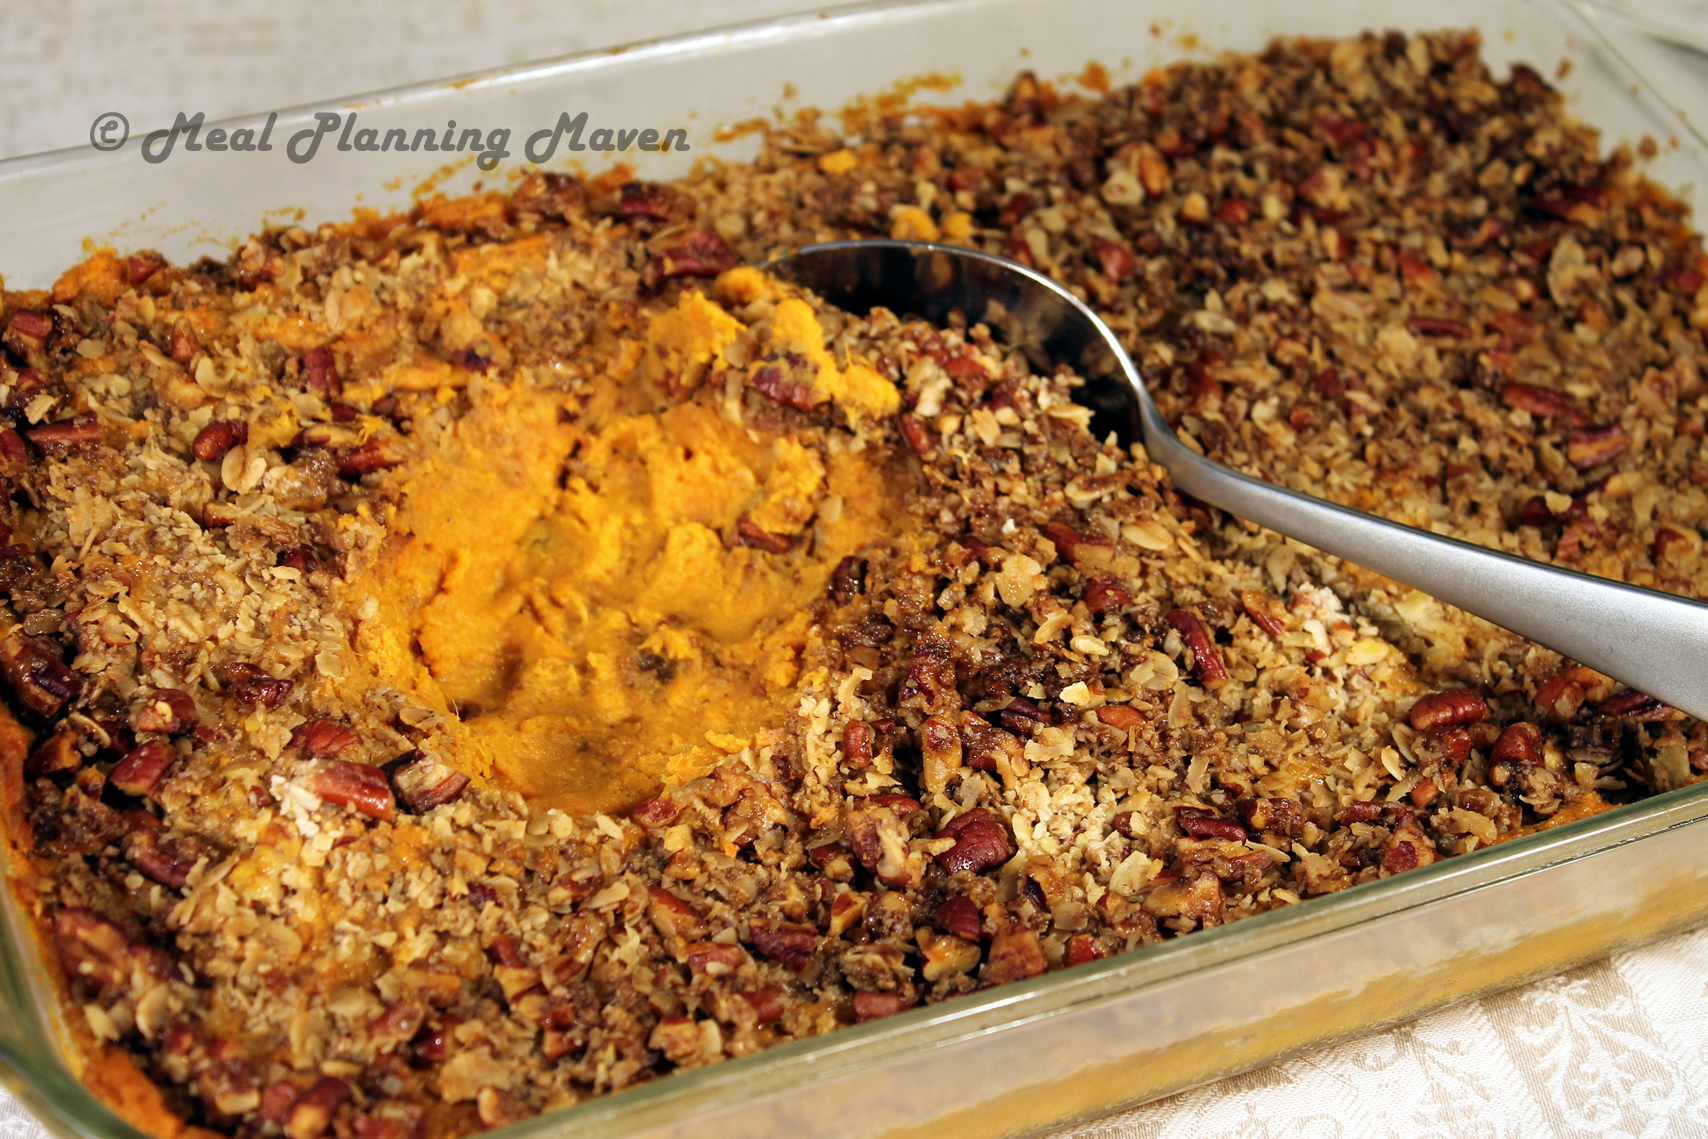 Sweet Potato Mash with Pecan Streusel Topping